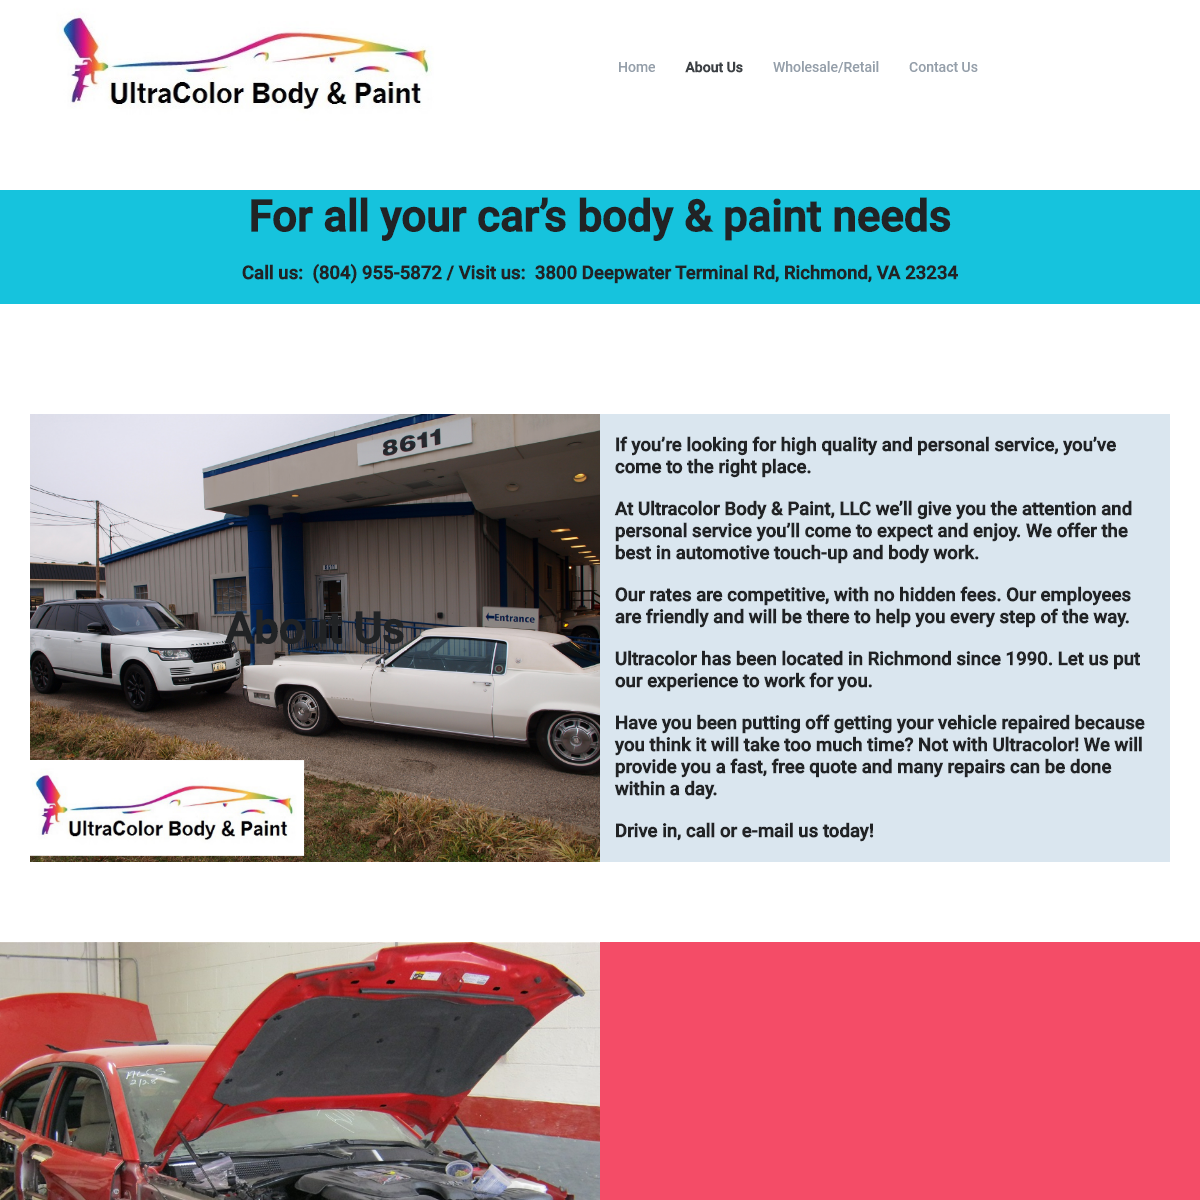 UltraColor Body & Paint – Automotive Body Shop and Painting